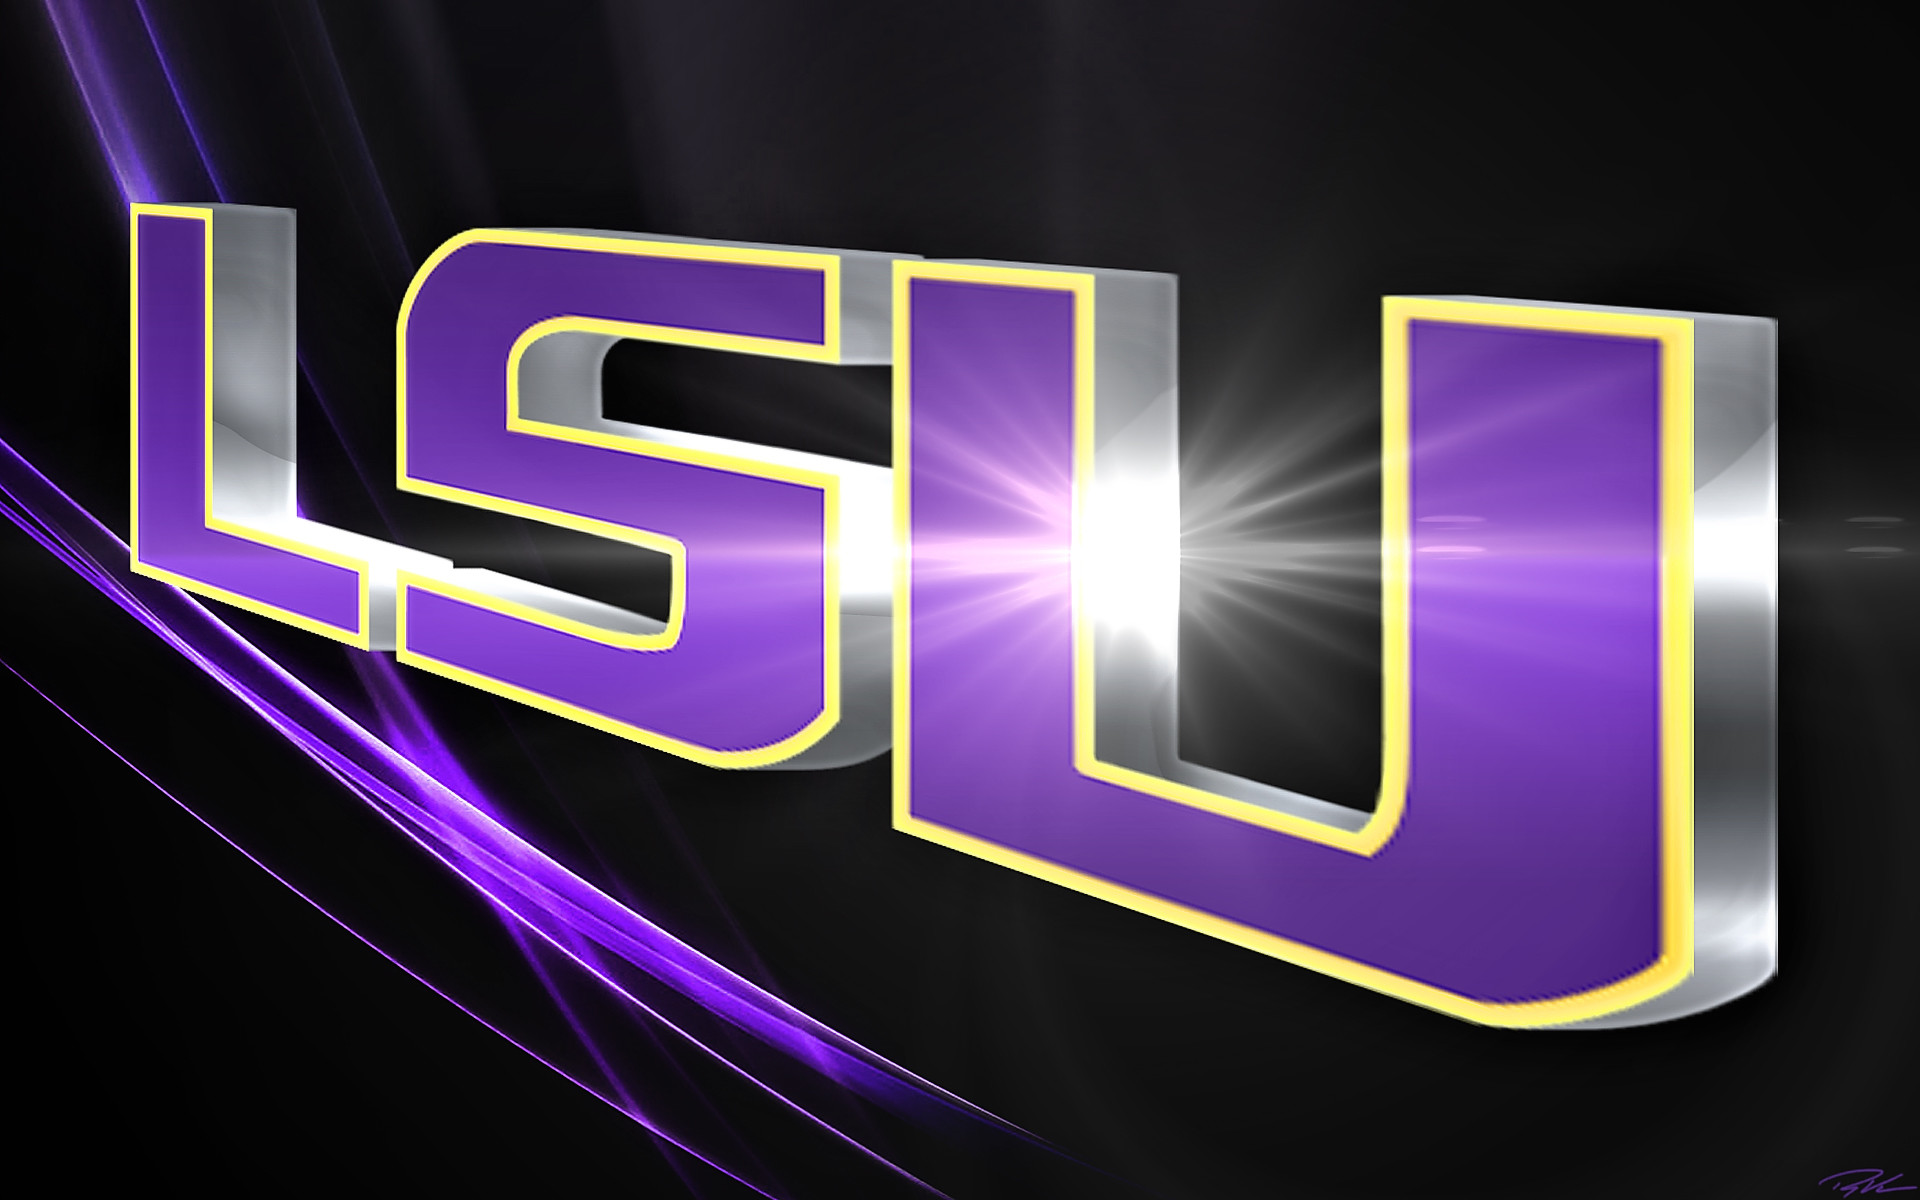 LSU Screensavers and Wallpaper (47+ images)